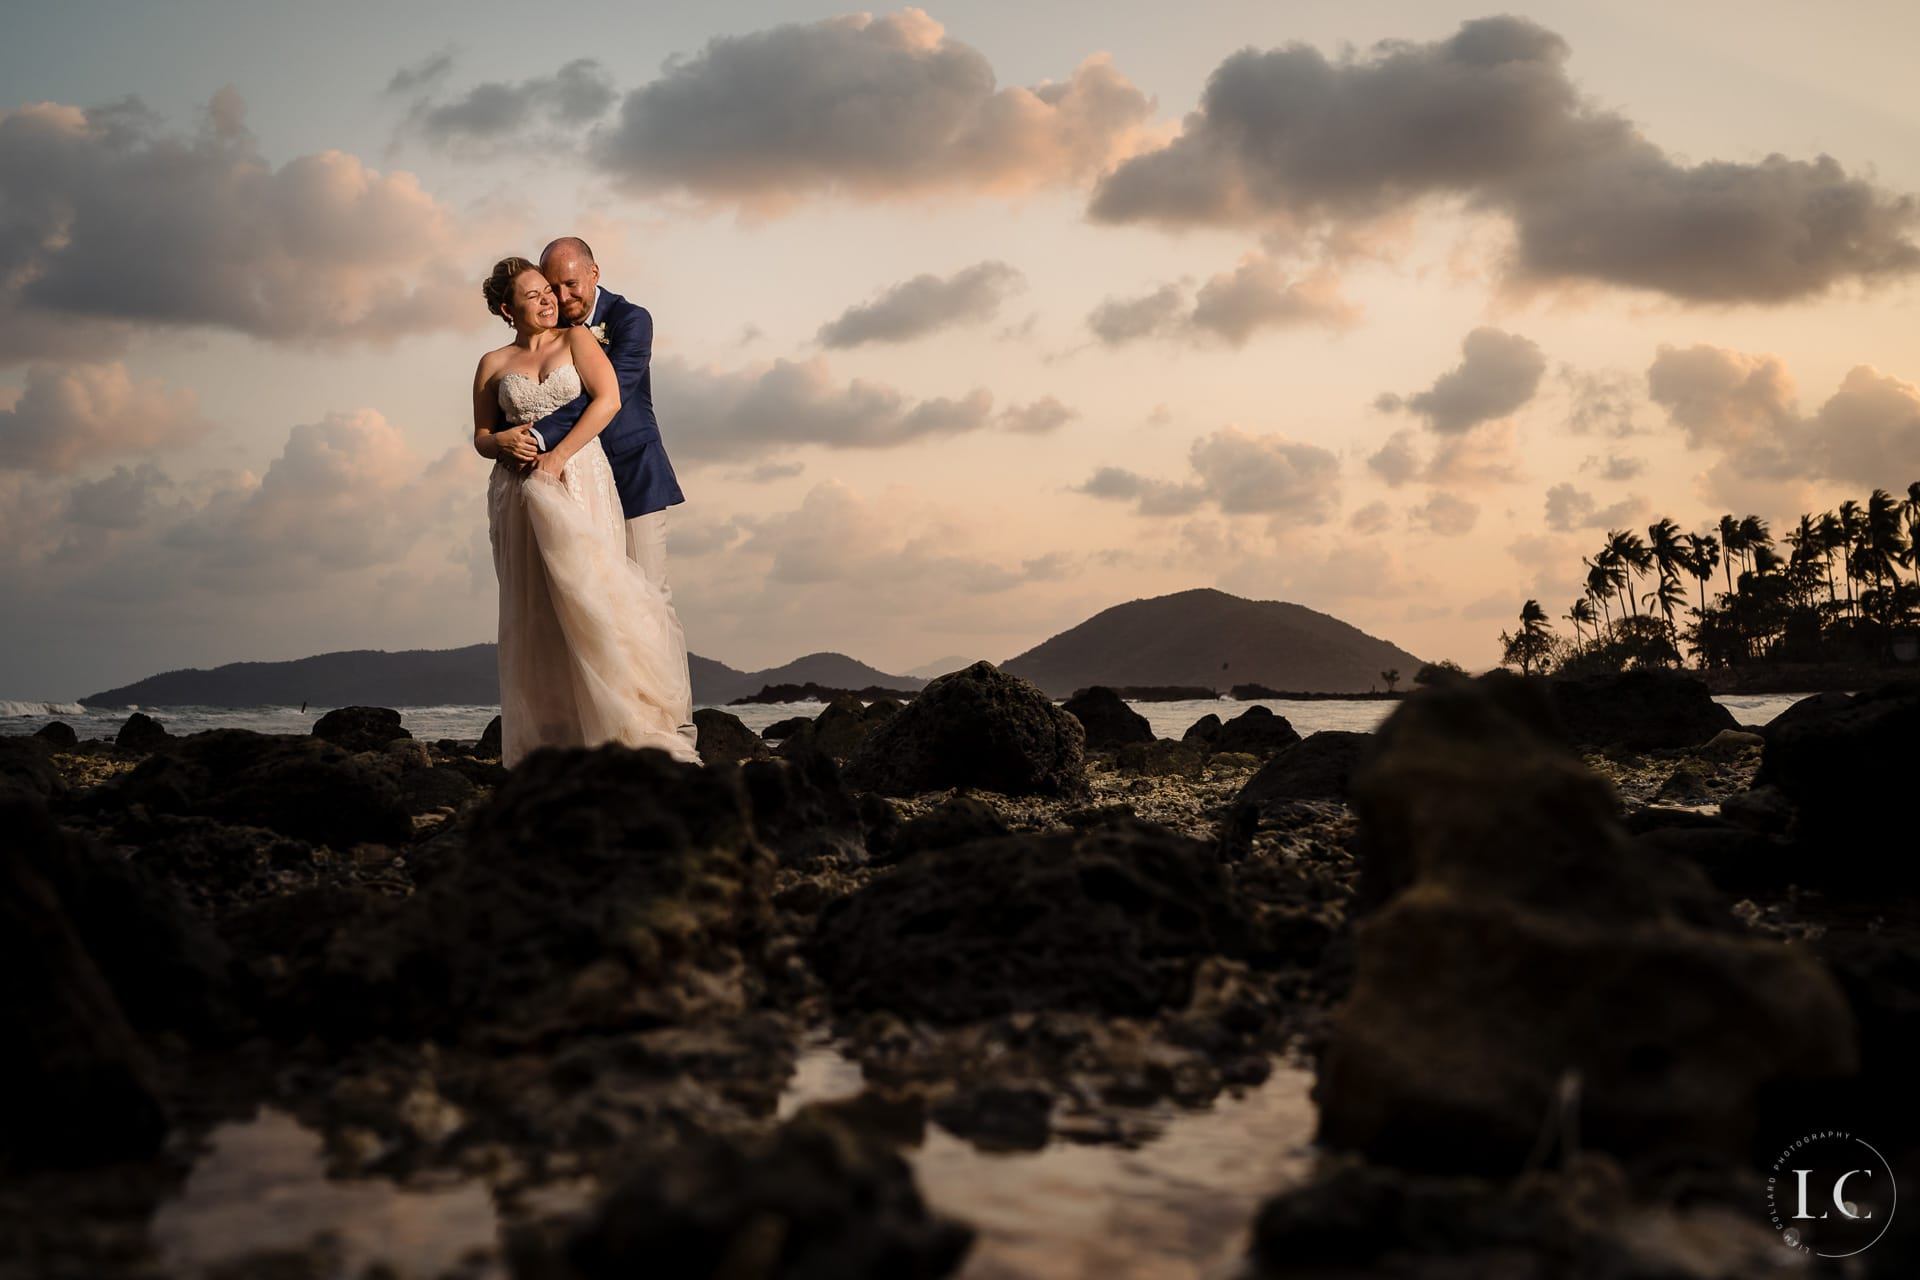 Bride and groom embracing at sunset